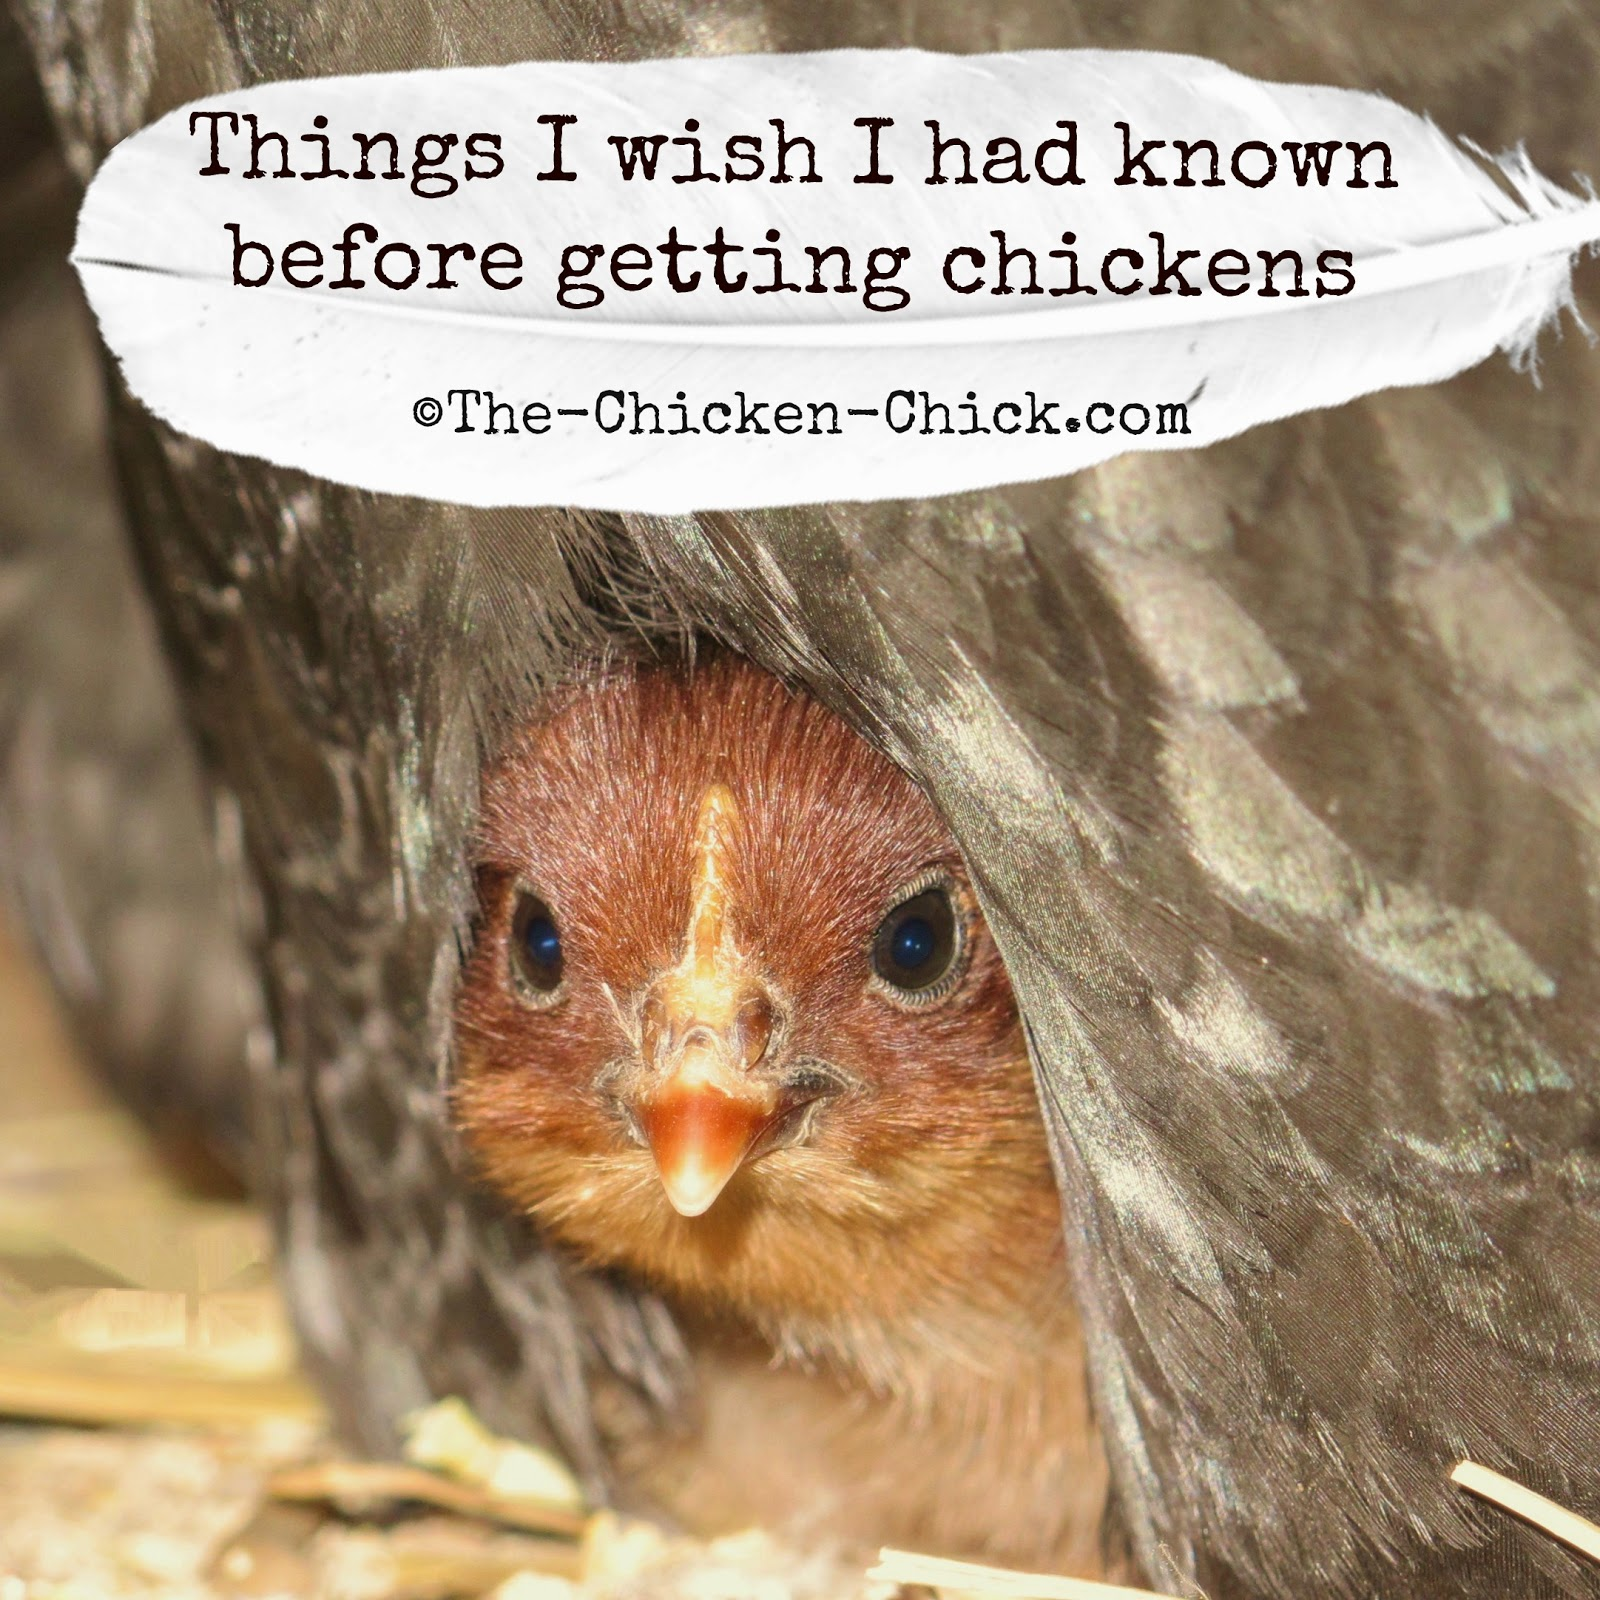 Some lessons in chicken care are painful and expensive to learn by experience, so in the hope of sparing some growing pains for those about to embark on chicken-keeping, my Facebook fans and I have written a of things we wish we had known before taking the chicken plunge.